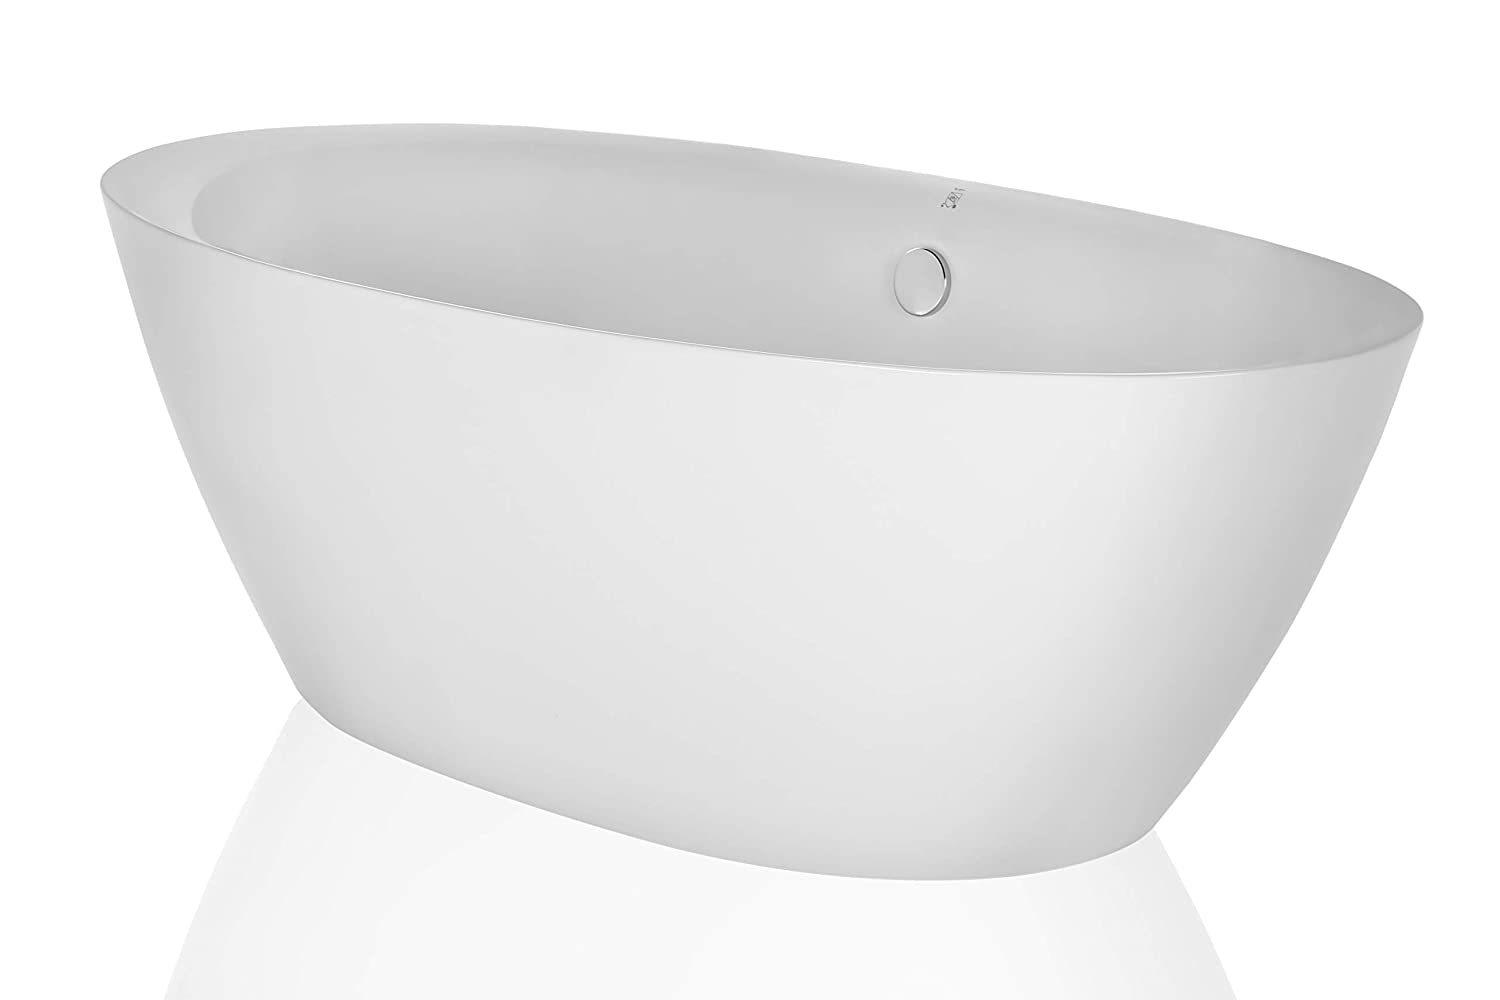 Empava 71 Luxury Freestanding Bathtub Soaking SPA Tub by Empava Modern Stand Alone Bathtubs with Custom Contemporary Design EMPV-FT1503